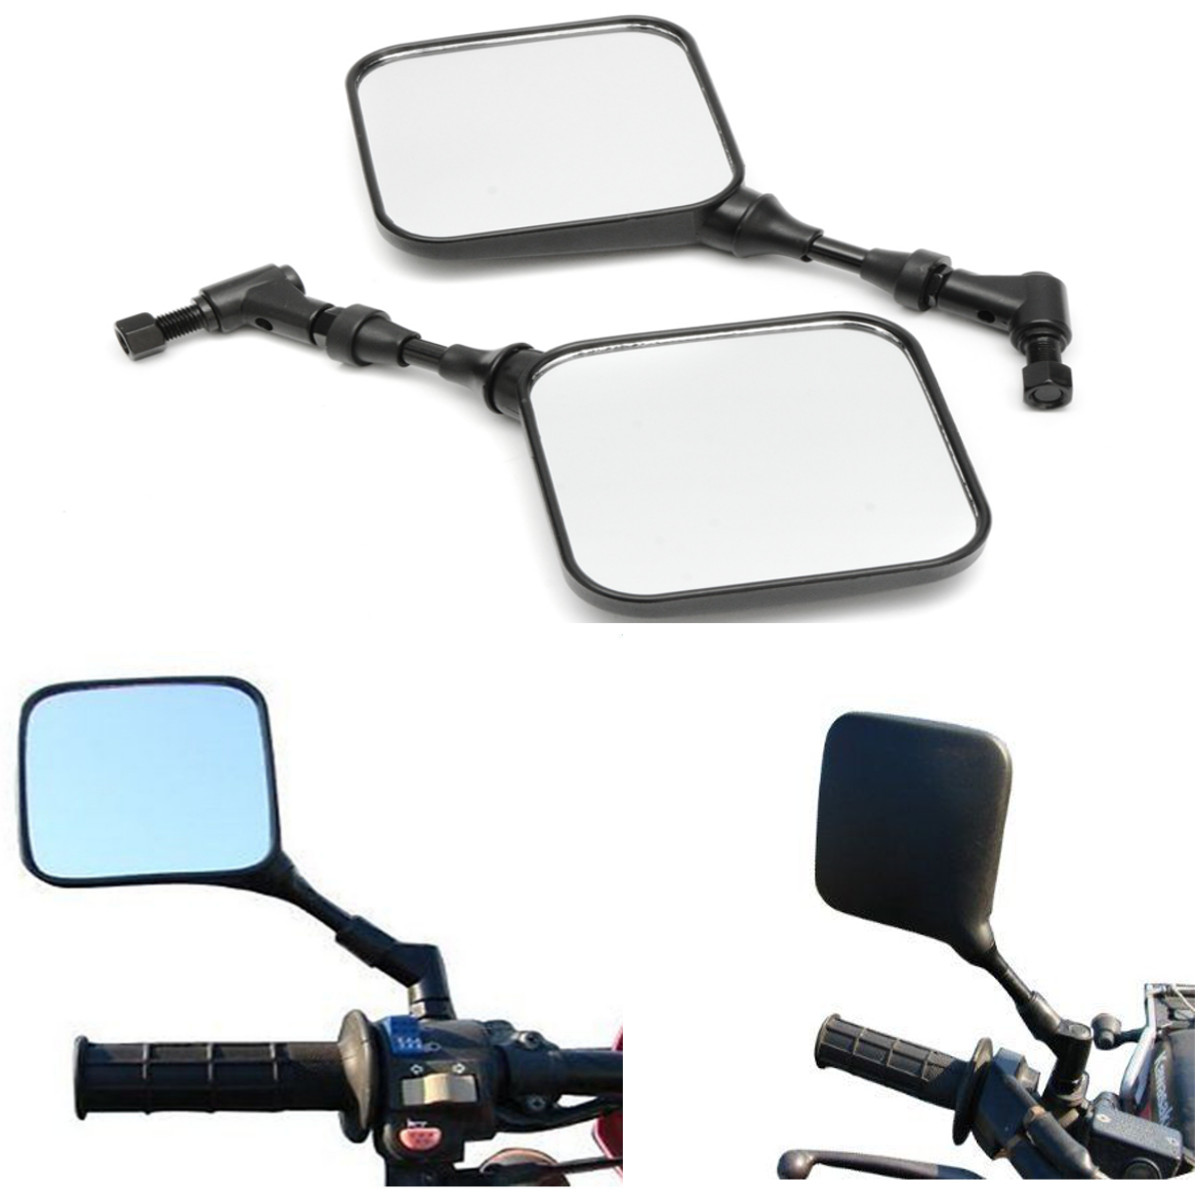 Pair Motorcycle Mirrors Rear View Side Mirror For Suzuki DR 200 250 DR350 350 DRZ 400 650 DR650